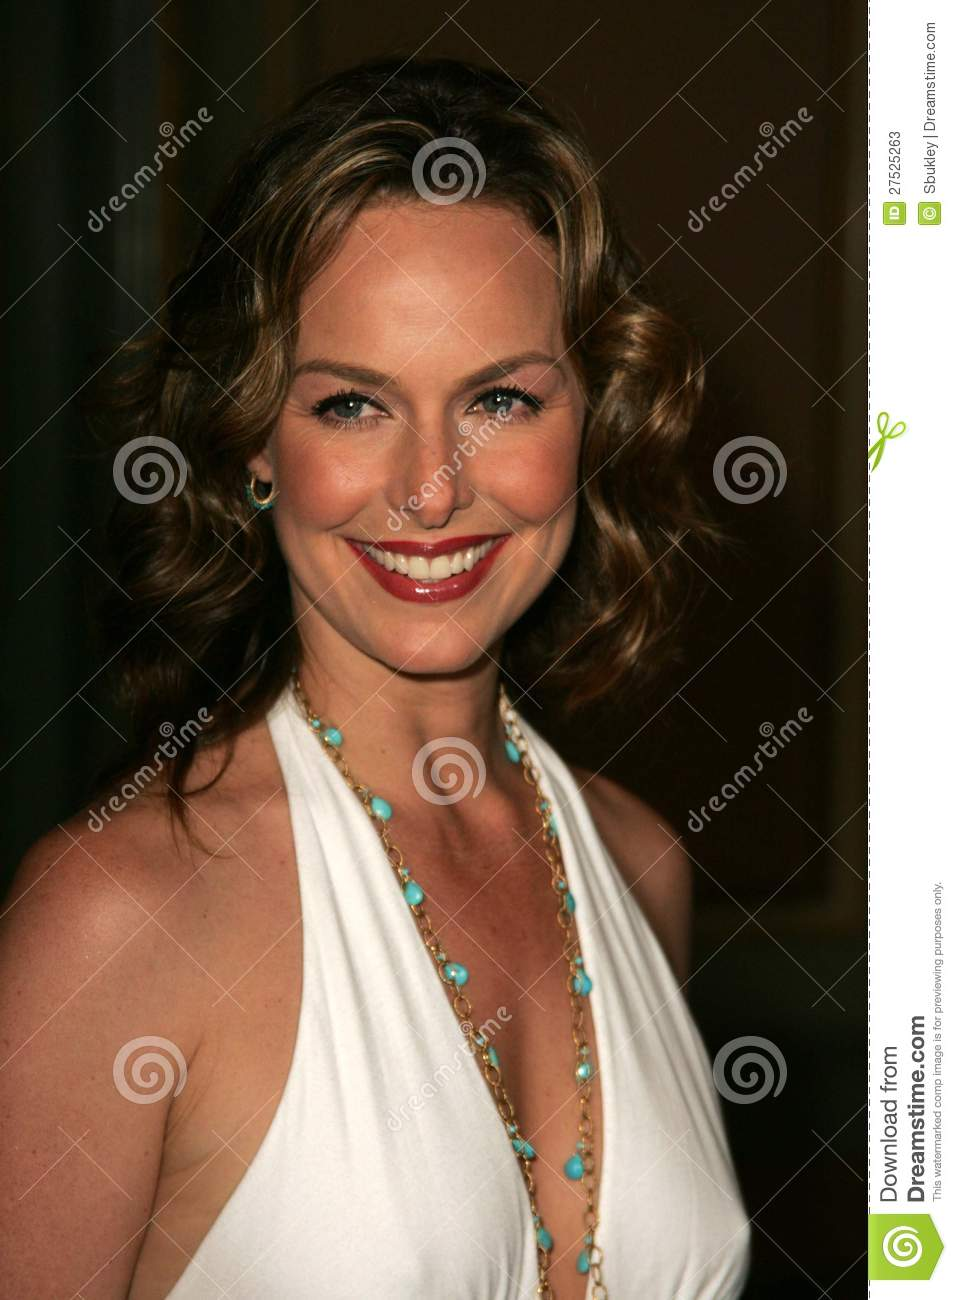 Melora Hardin nude (12 pics), images Boobs, iCloud, lingerie 2018